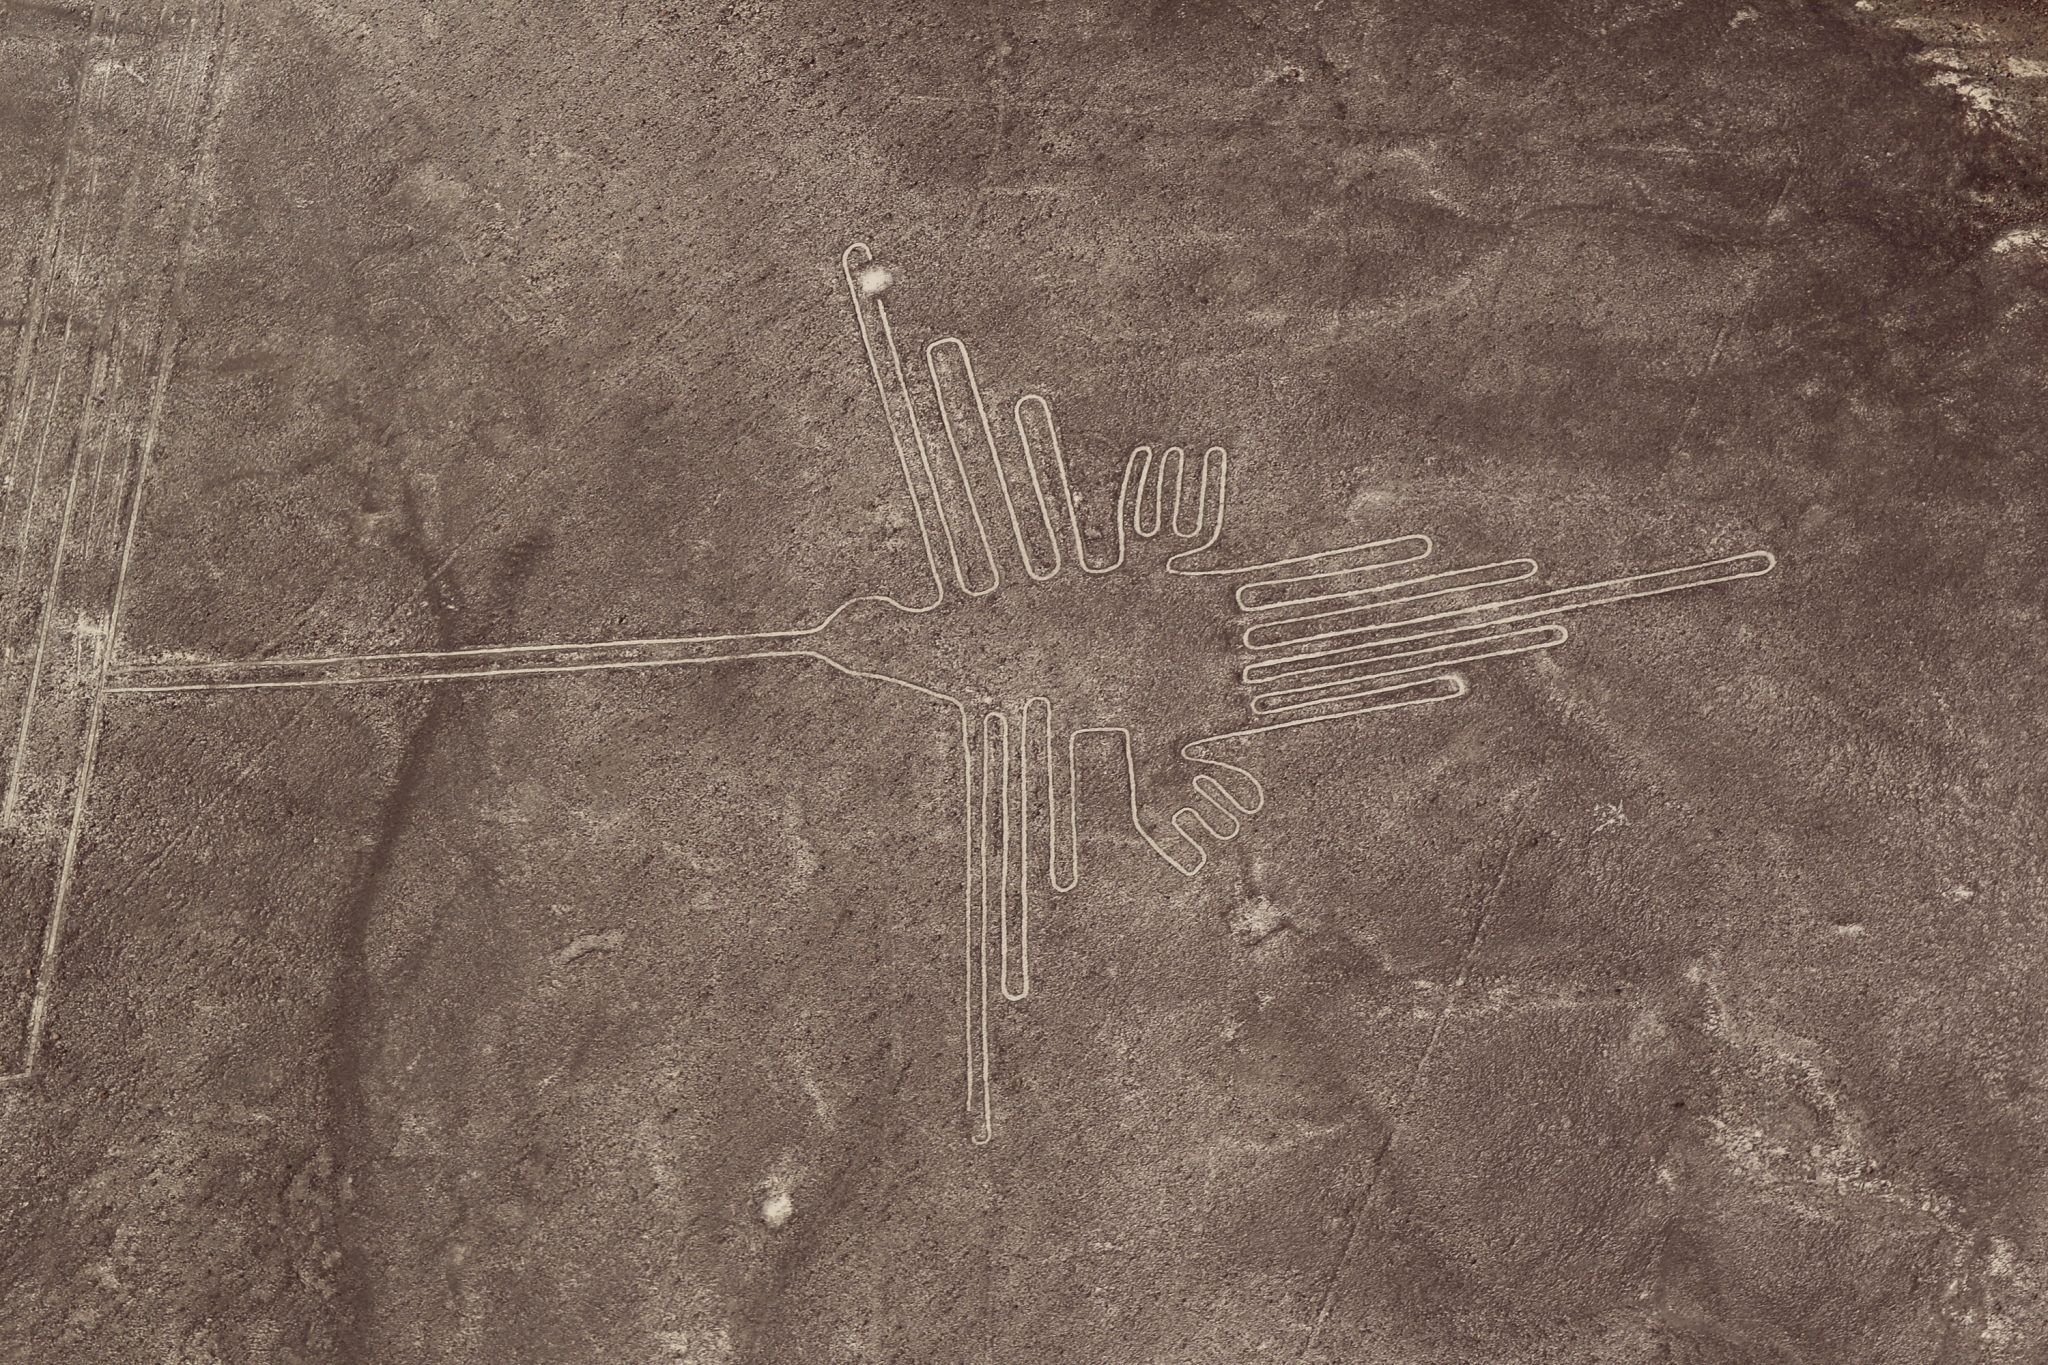 Why are the Nazca lines such a big draw?